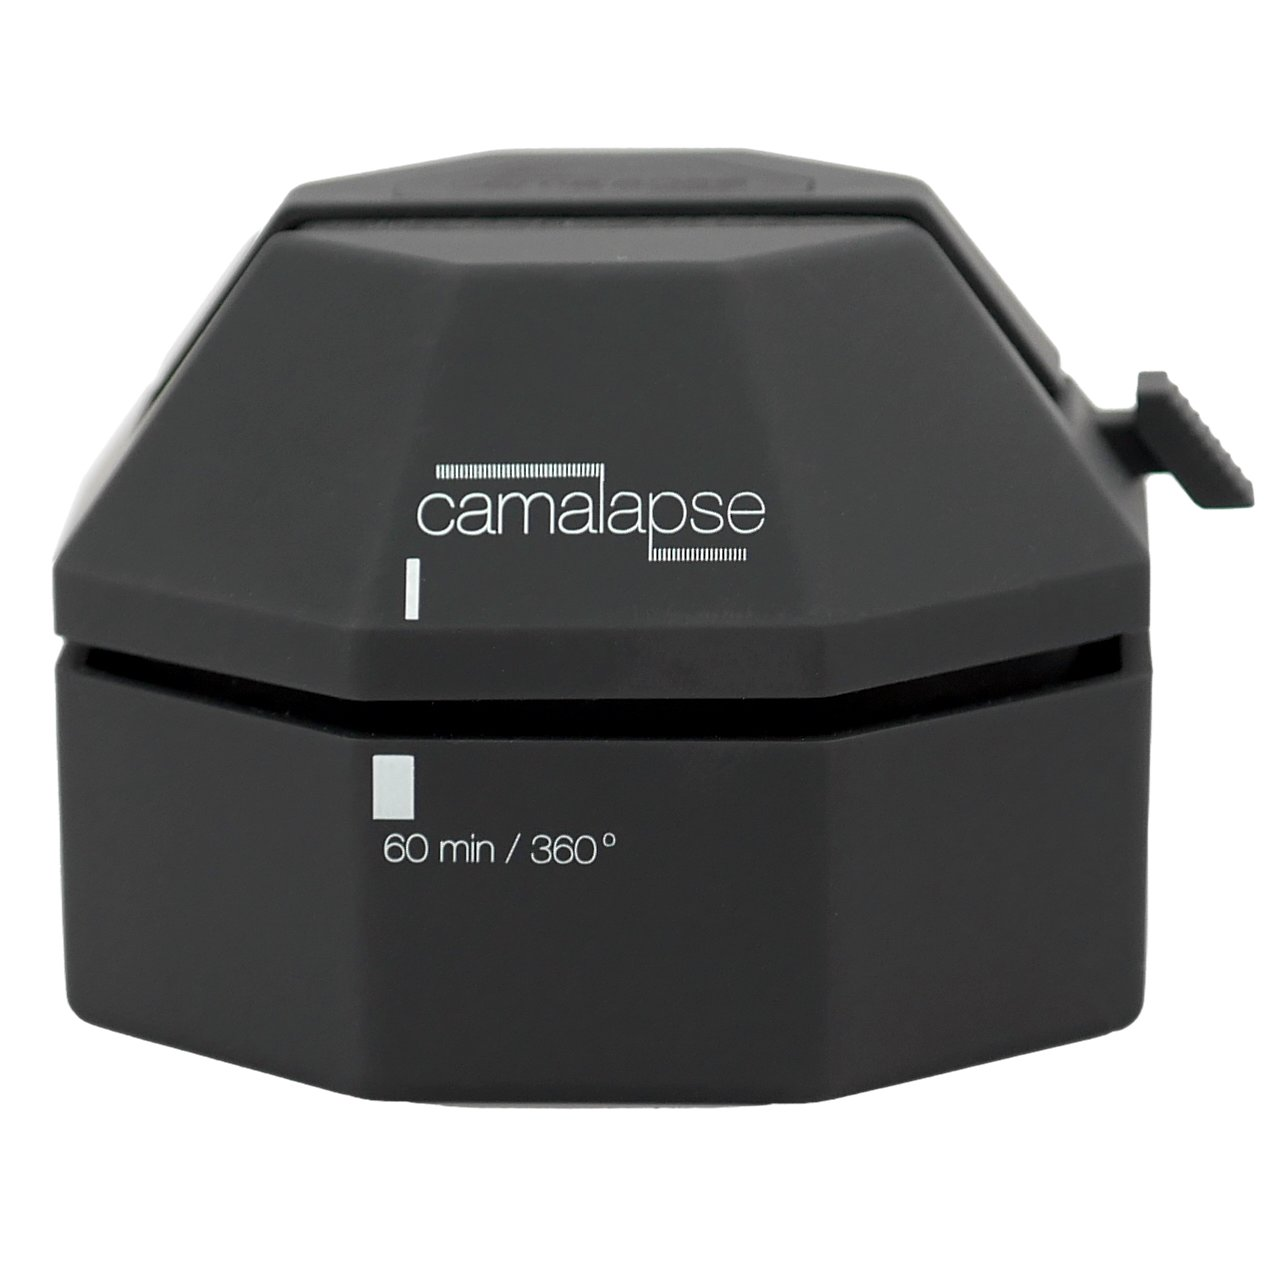 camalapse mobile - a rotating/panning timelapse accessory for smartphones